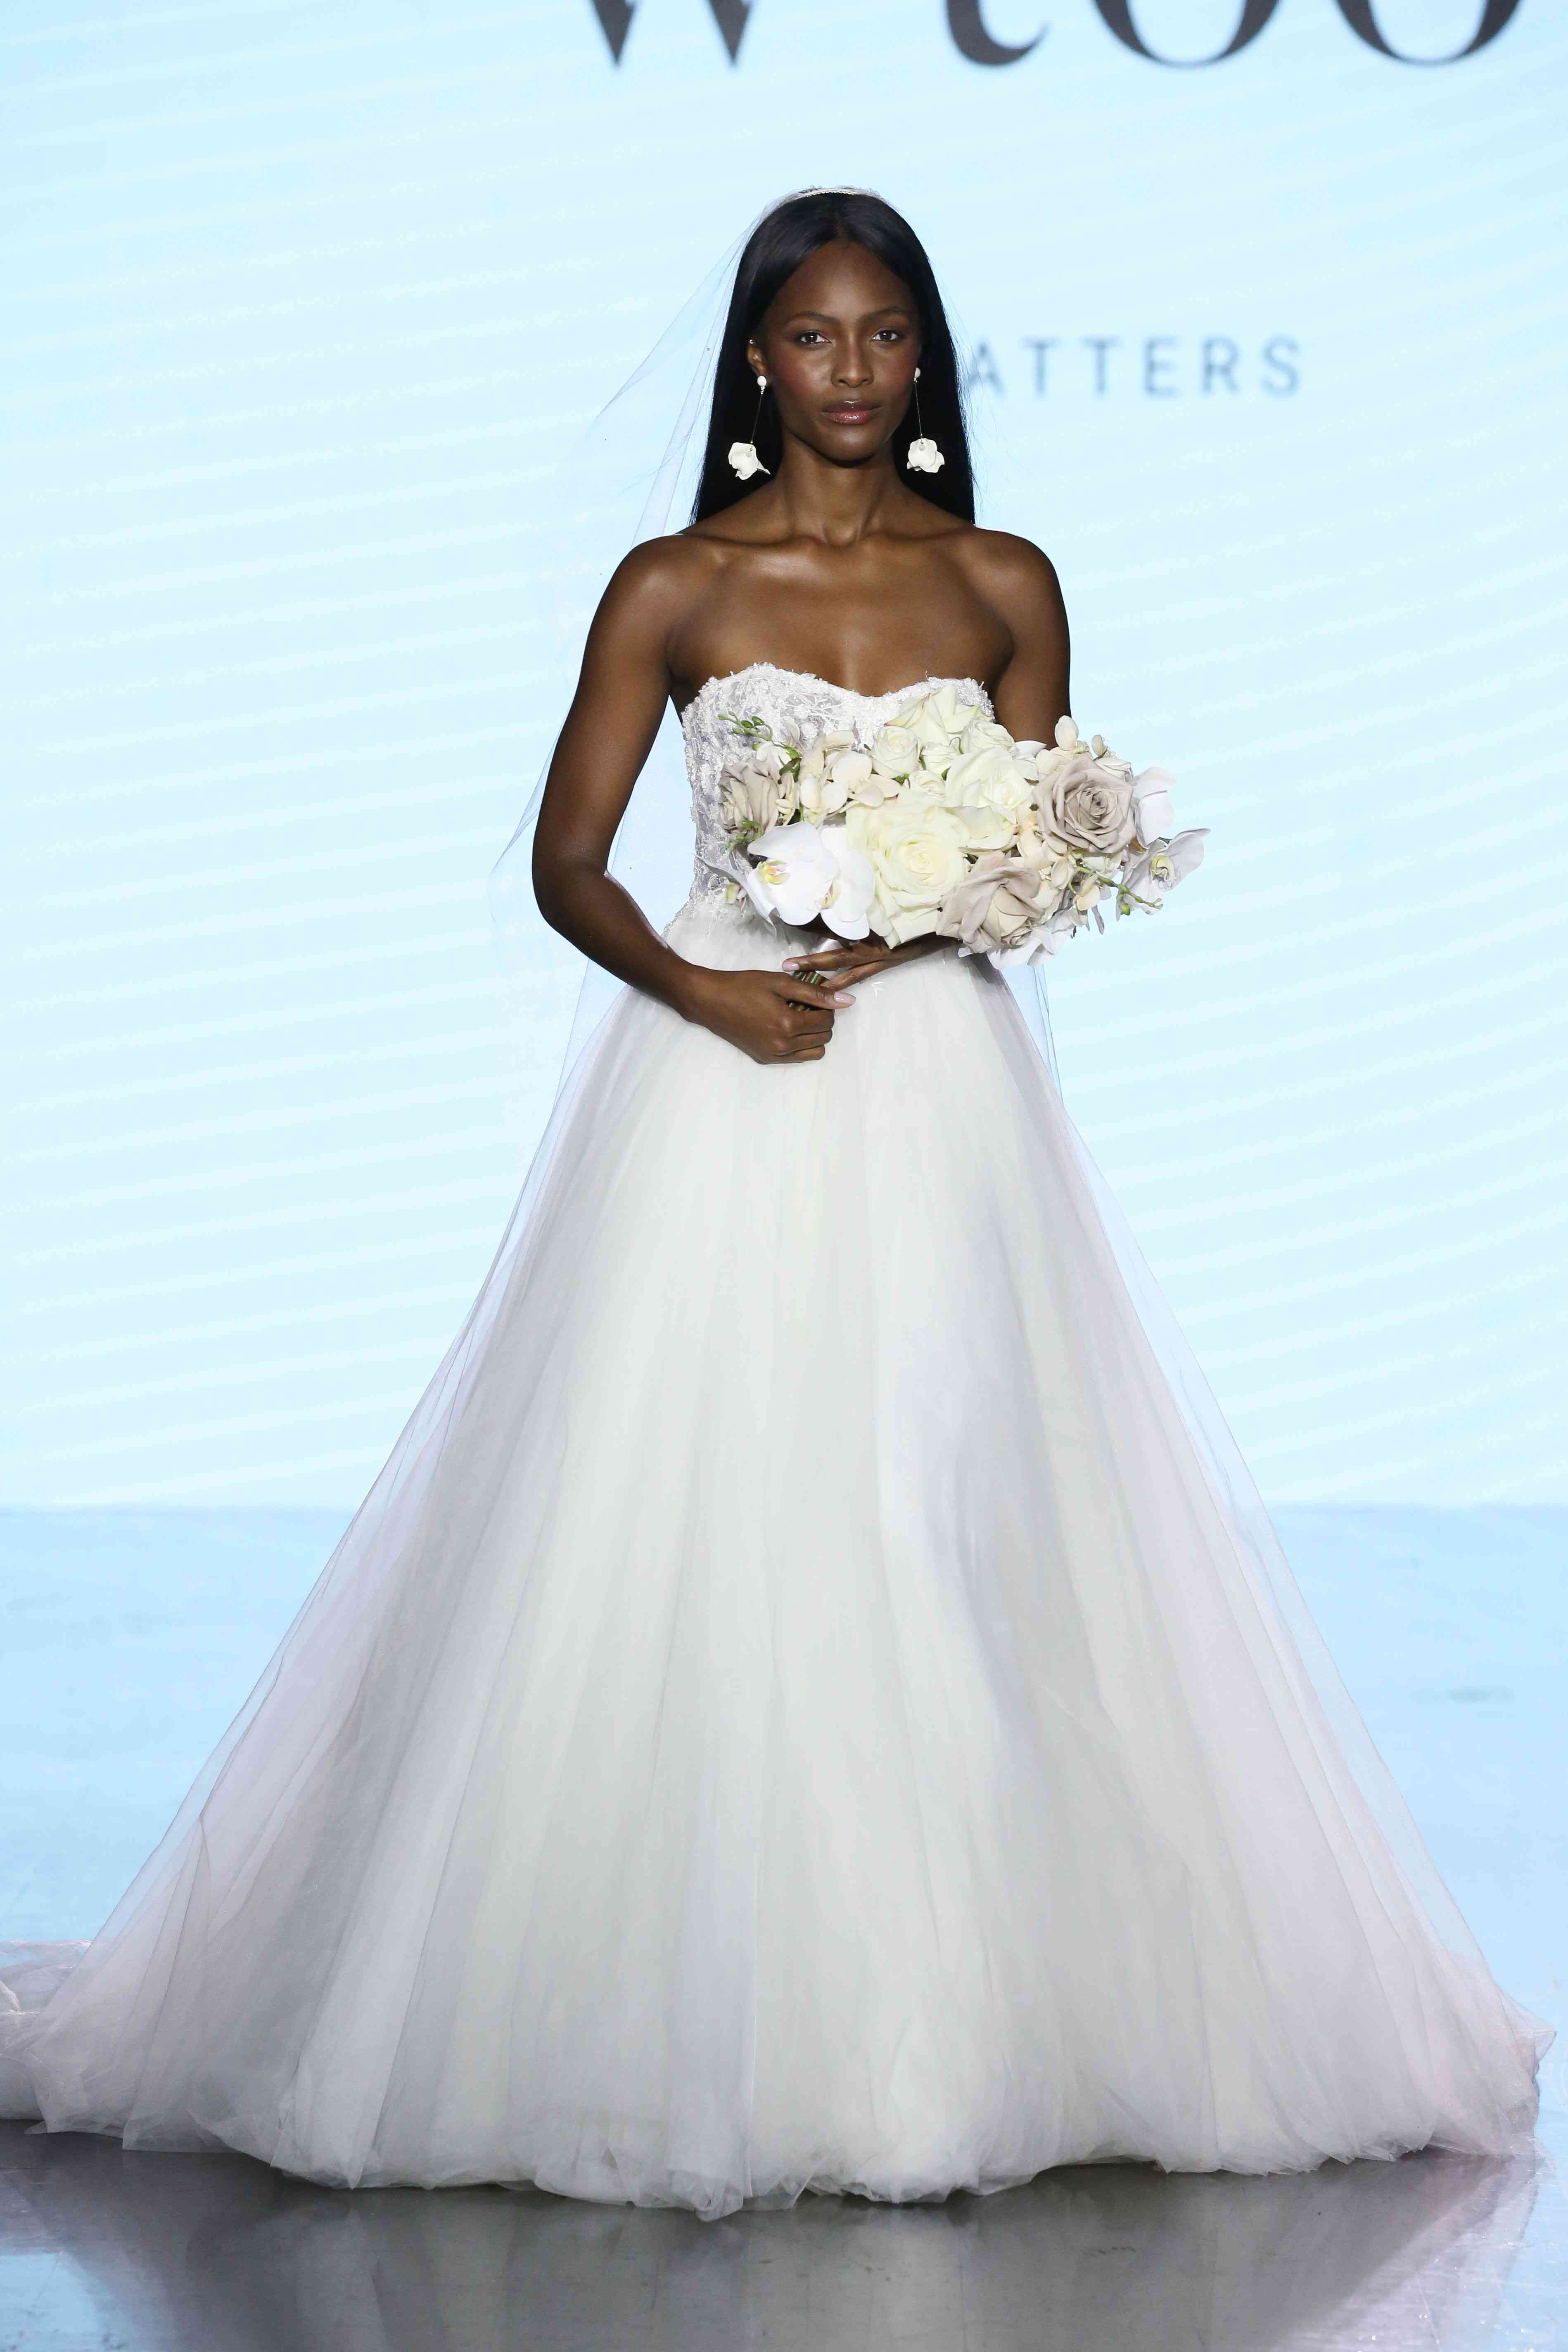 Model in strapless ballgown with a floral embroidered bodice and tulle skirt